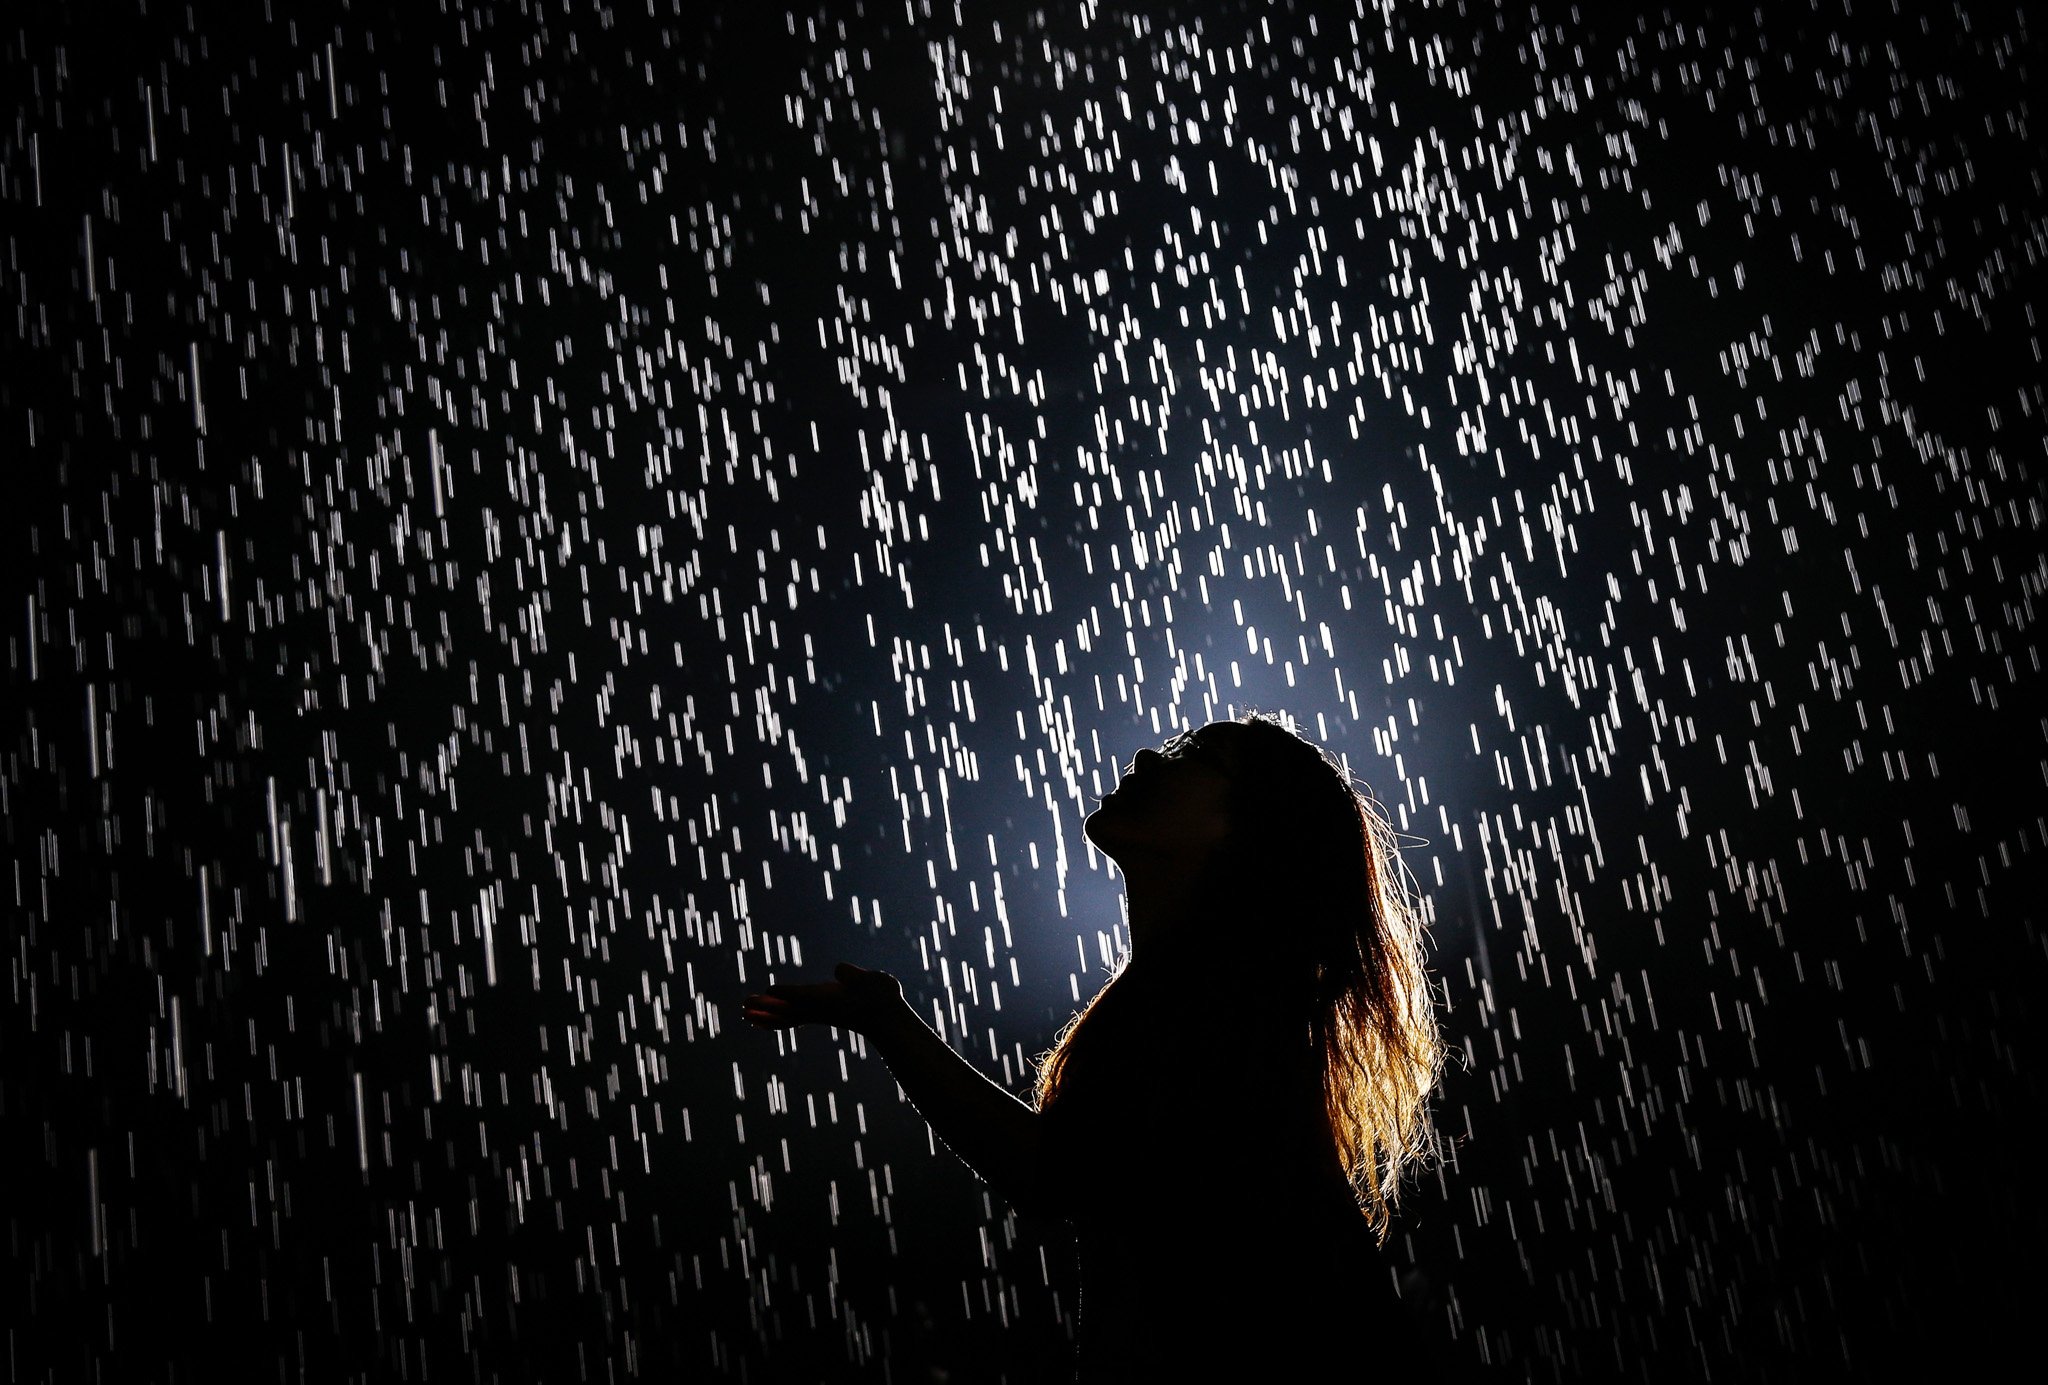 """""""Rain Room"""" Comes To Shanghai...SHANGHAI, CHINA - AUGUST 31: (CHINA OUT) A visitor walks through and experiences """"Rain Room"""" at Shanghai Yuz Museum on August 31, 2105 in Shanghai, China. Rain Room (2012), a large-scale environment by Random International, is presented at The Museum of Modern Art from May 12 to July 28, 2013, as part of EXPO 1: New York. Rain Room consists of a field of falling water that visitors may walk through and experience how it might feel to control the rain. The work also invites visitors to explore what role science, technology, and human ingenuity can play in stabilizing our environment. Using digital technology, Rain Room is a carefully choreographed downpour°™a monumental work that encourages people to become performers on an unexpected stage, while creating an intimate atmosphere of contemplation. It comes to China now and will be exhibited at Shanghai Yuz Museum from September 1 to December 31 for four months. (Photo by ChinaFotoPress/Getty Images)"""